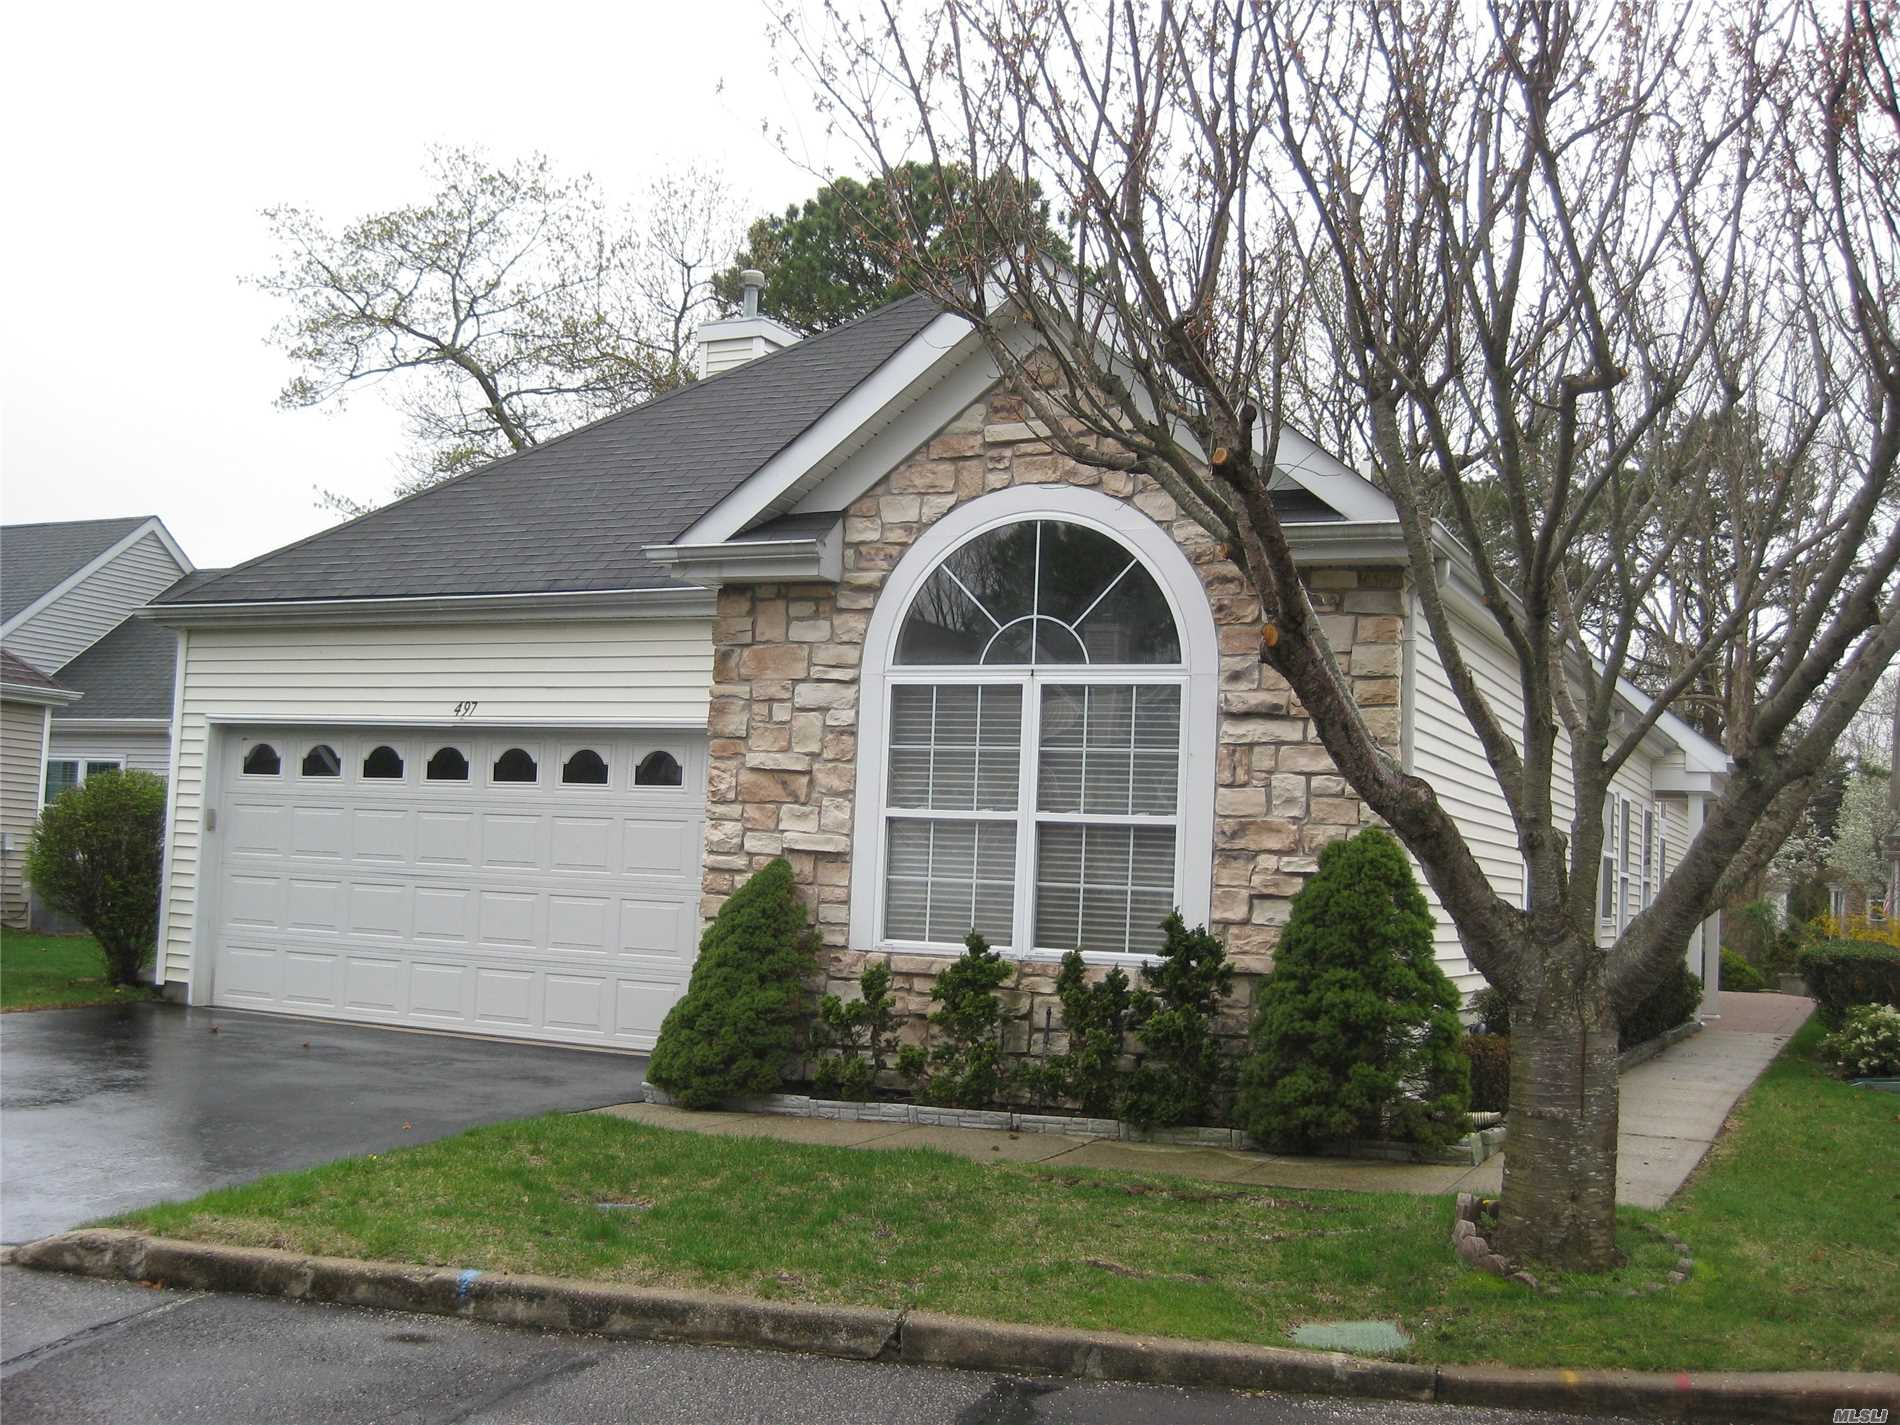 Well maintained and desirable Maidstone Model, 2 car garage, LR, DR, Den, EIK, MBR suite with whirlpool tub, laundry rm, large patio w/ elec awning, open floorplan, Clubhouse, pool and many other amenities Taxes were never grieved!